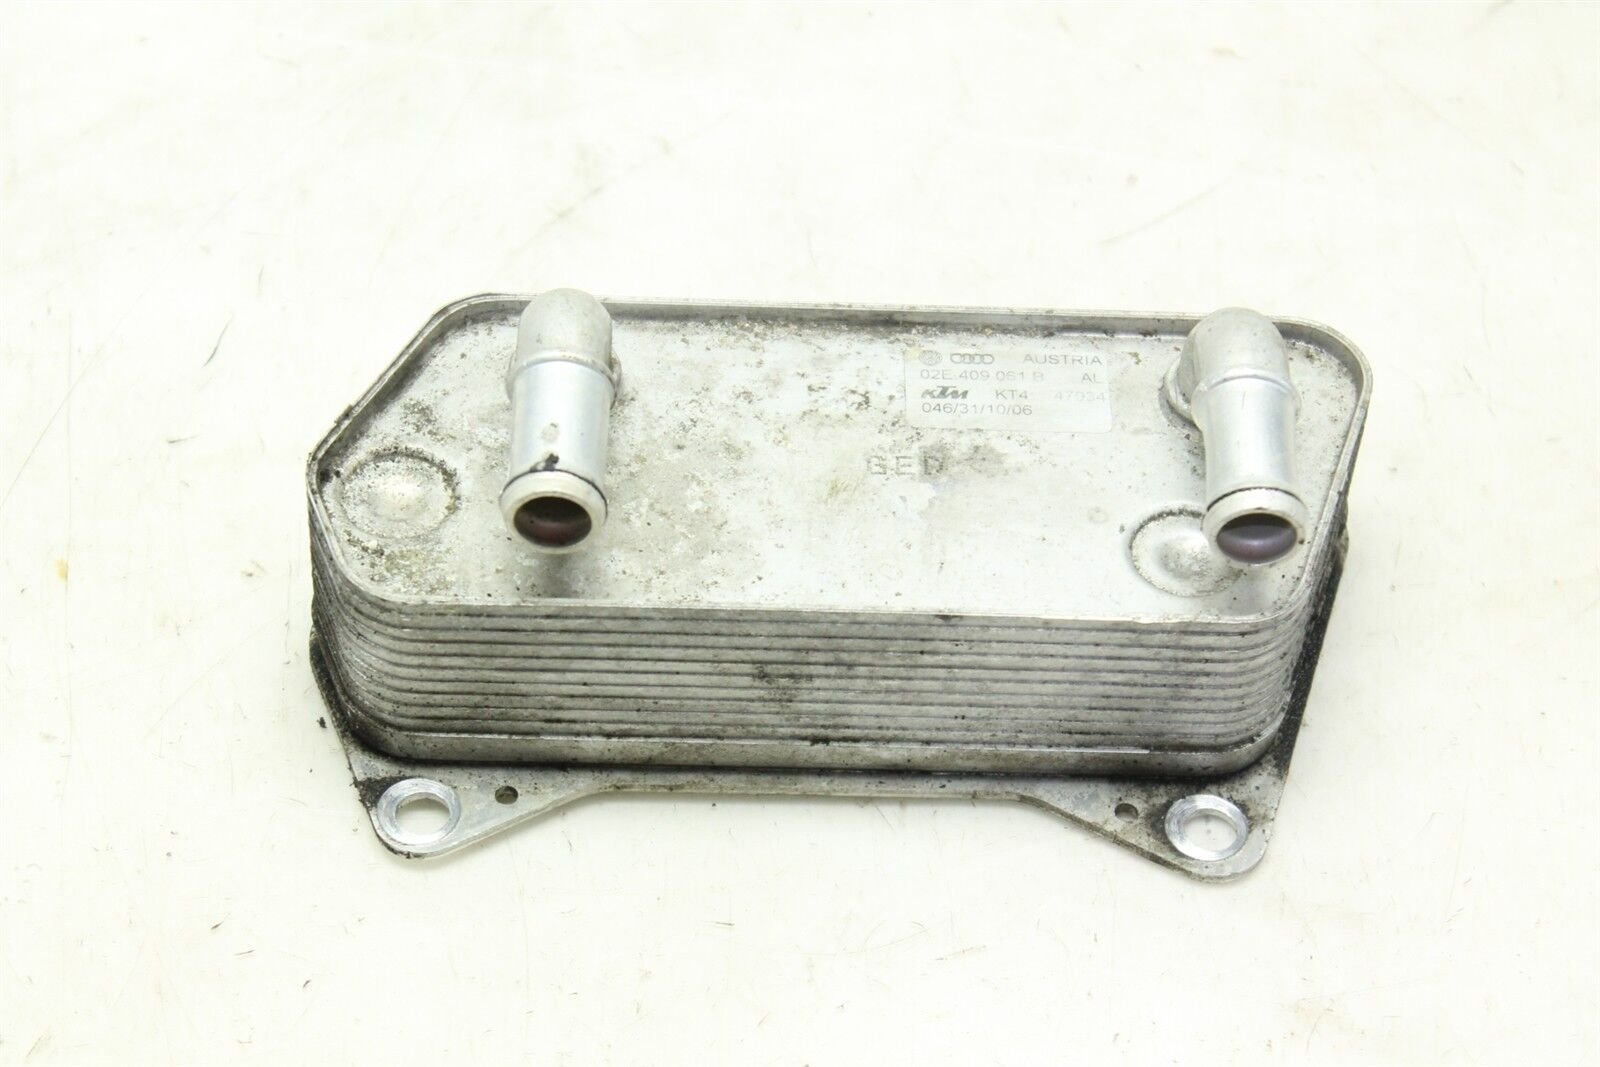 Used Volkswagen GTI Automatic Transmissions and Related